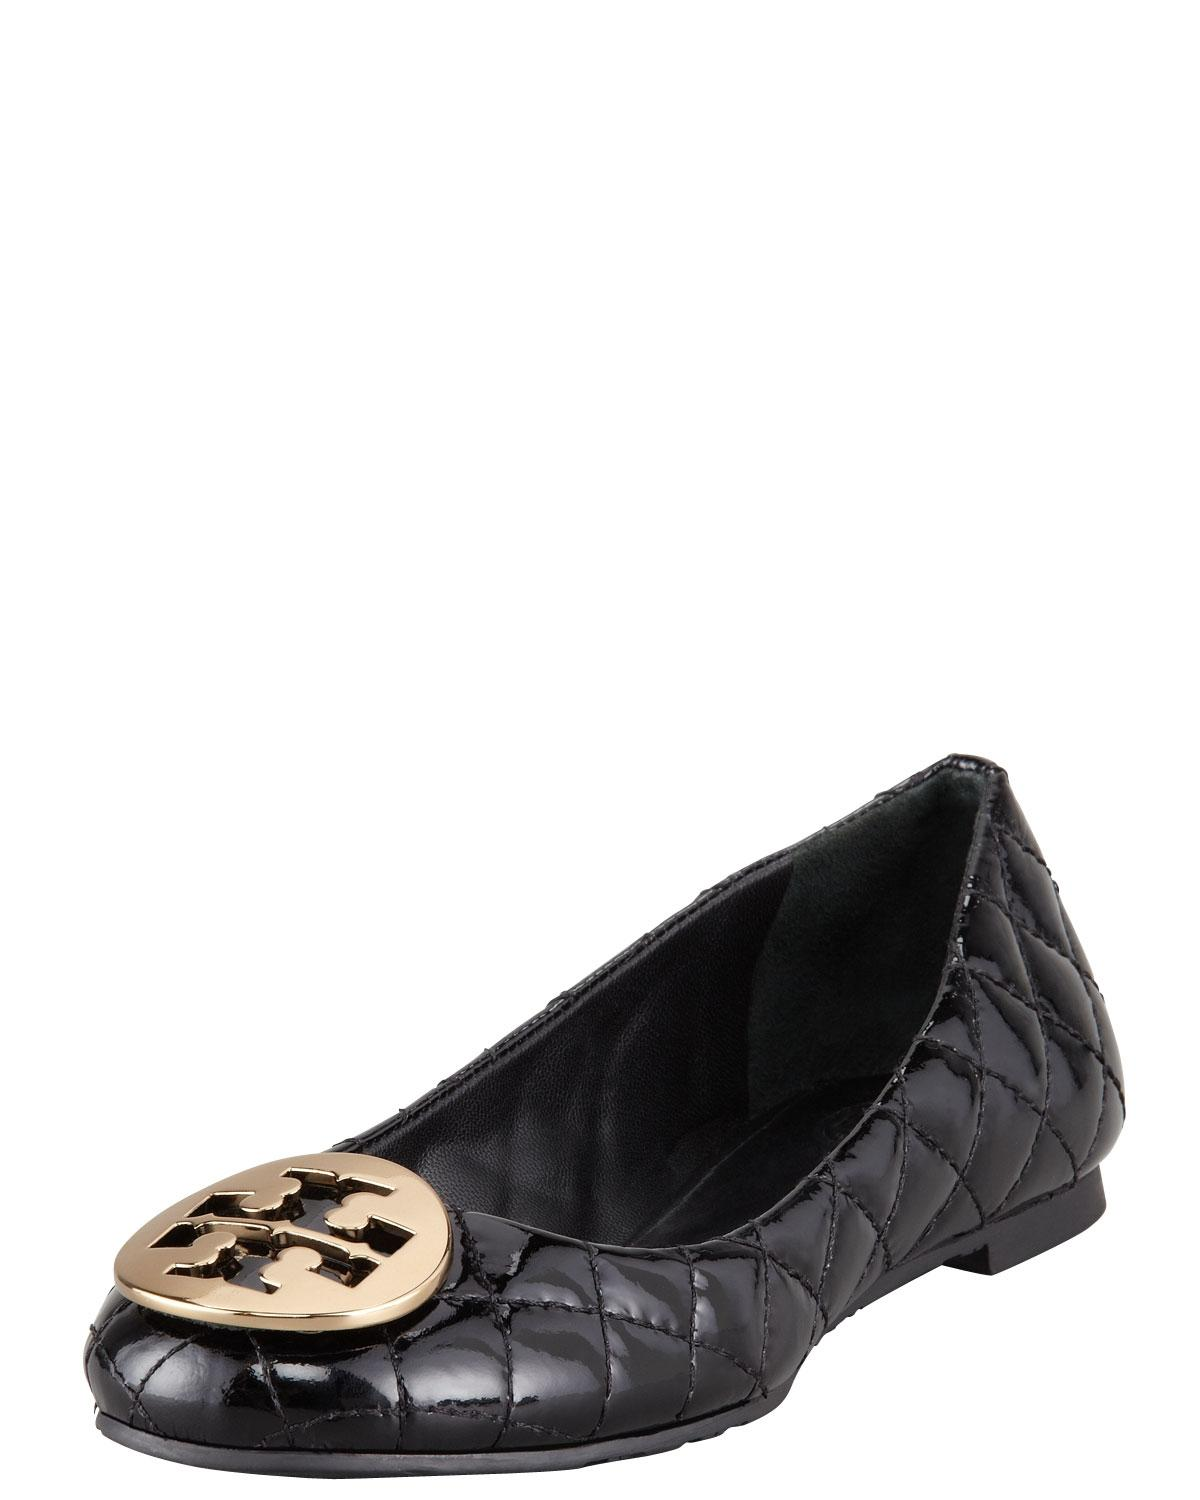 Tory Burch Quilted Gold Brown Flats